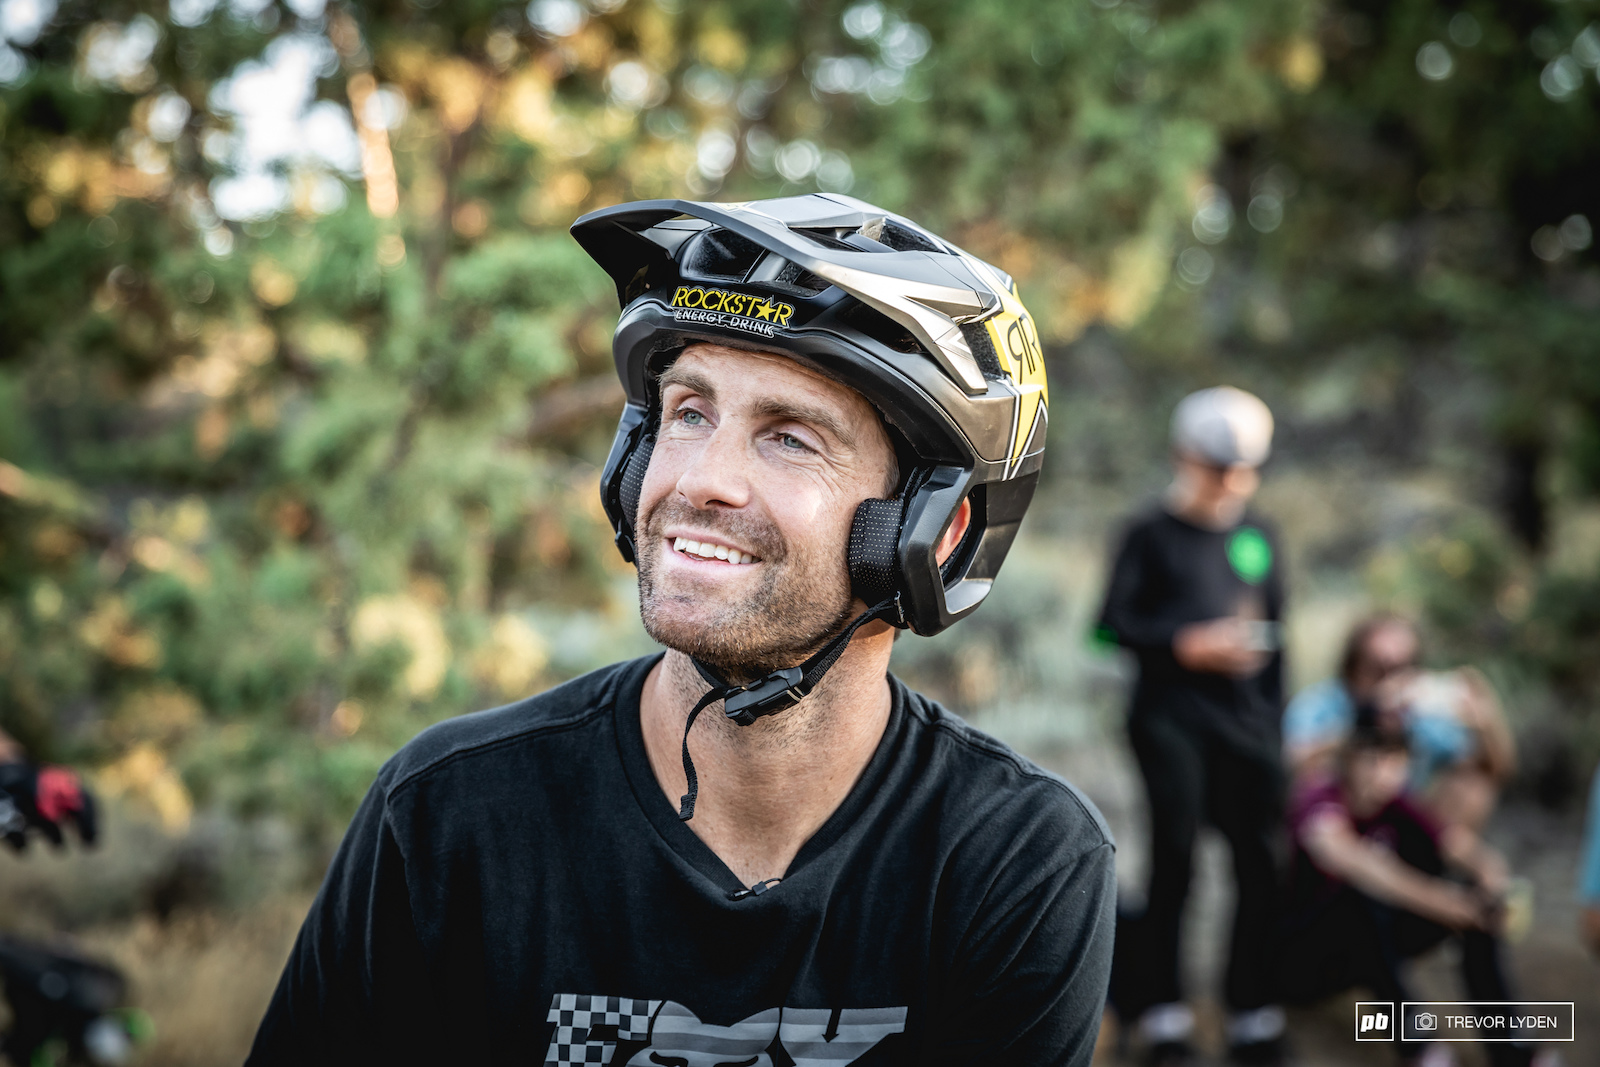 Cam McCaul had the crew over for his inaugural Slope Duro Cross event.